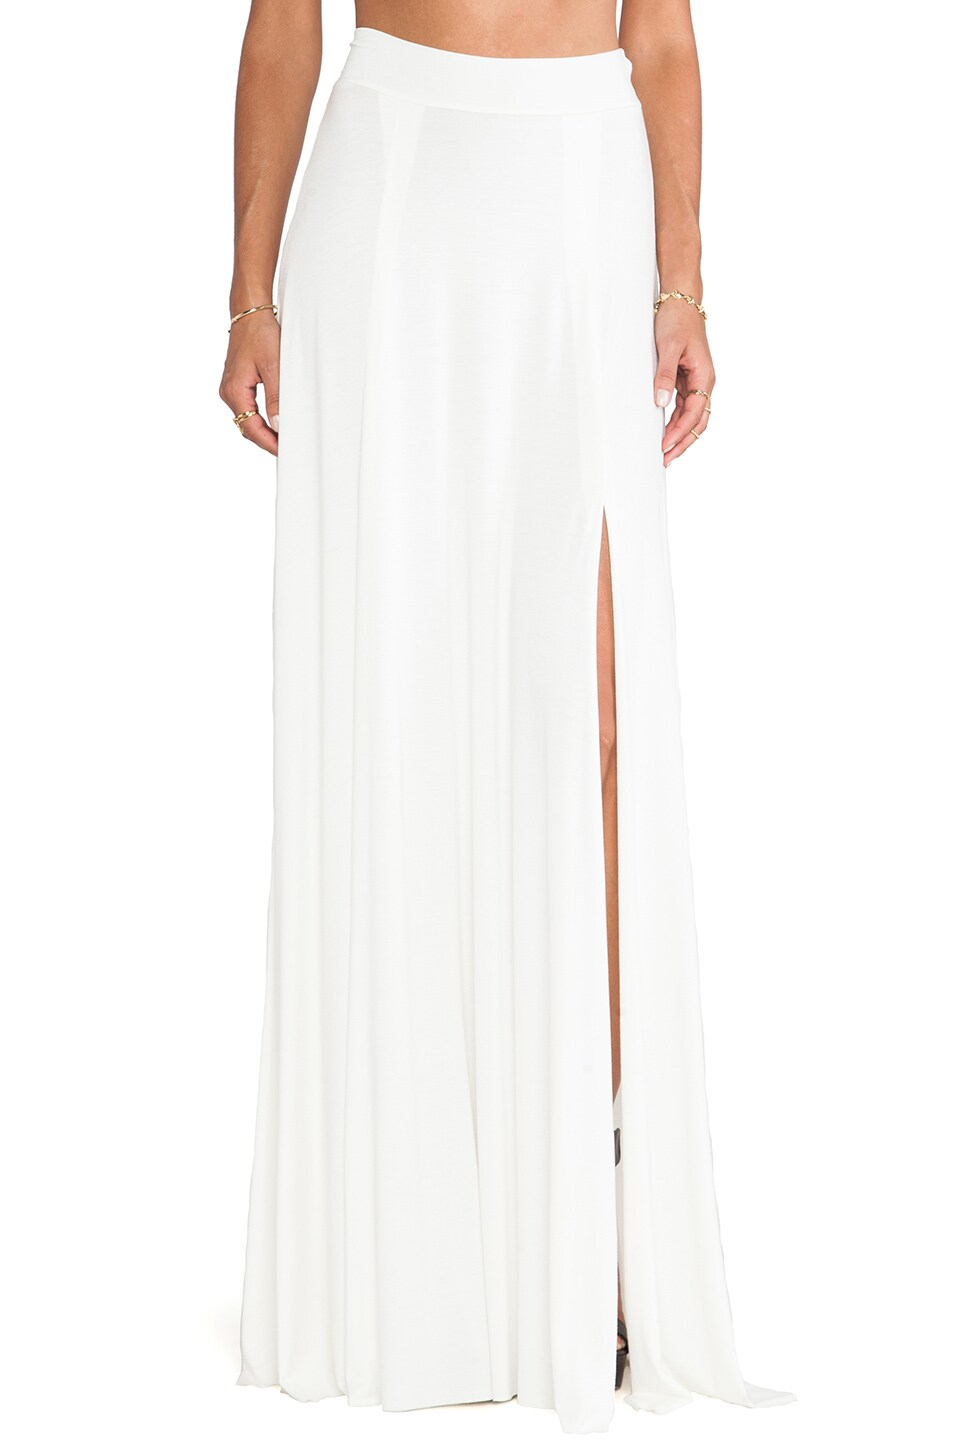 Rachel Pally X REVOLVE Josefine Maxi Skirt in White